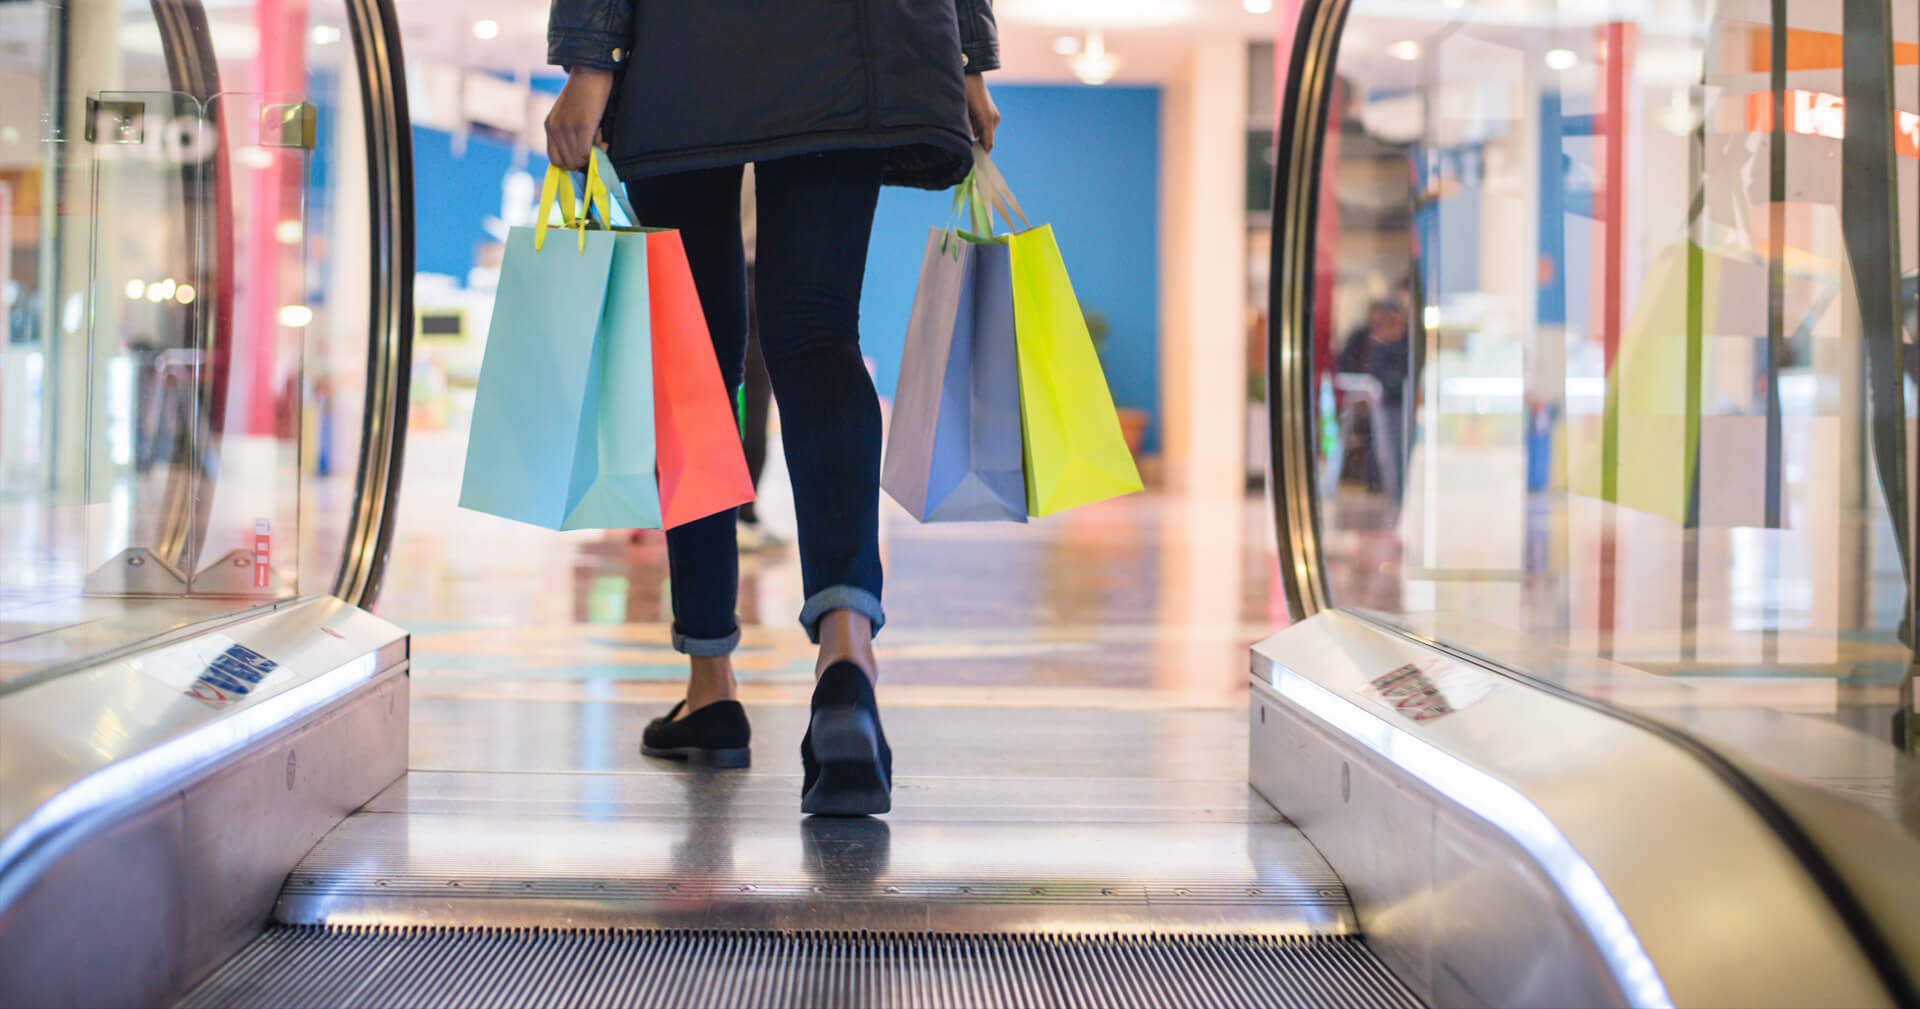 Shopping Malls of the Future